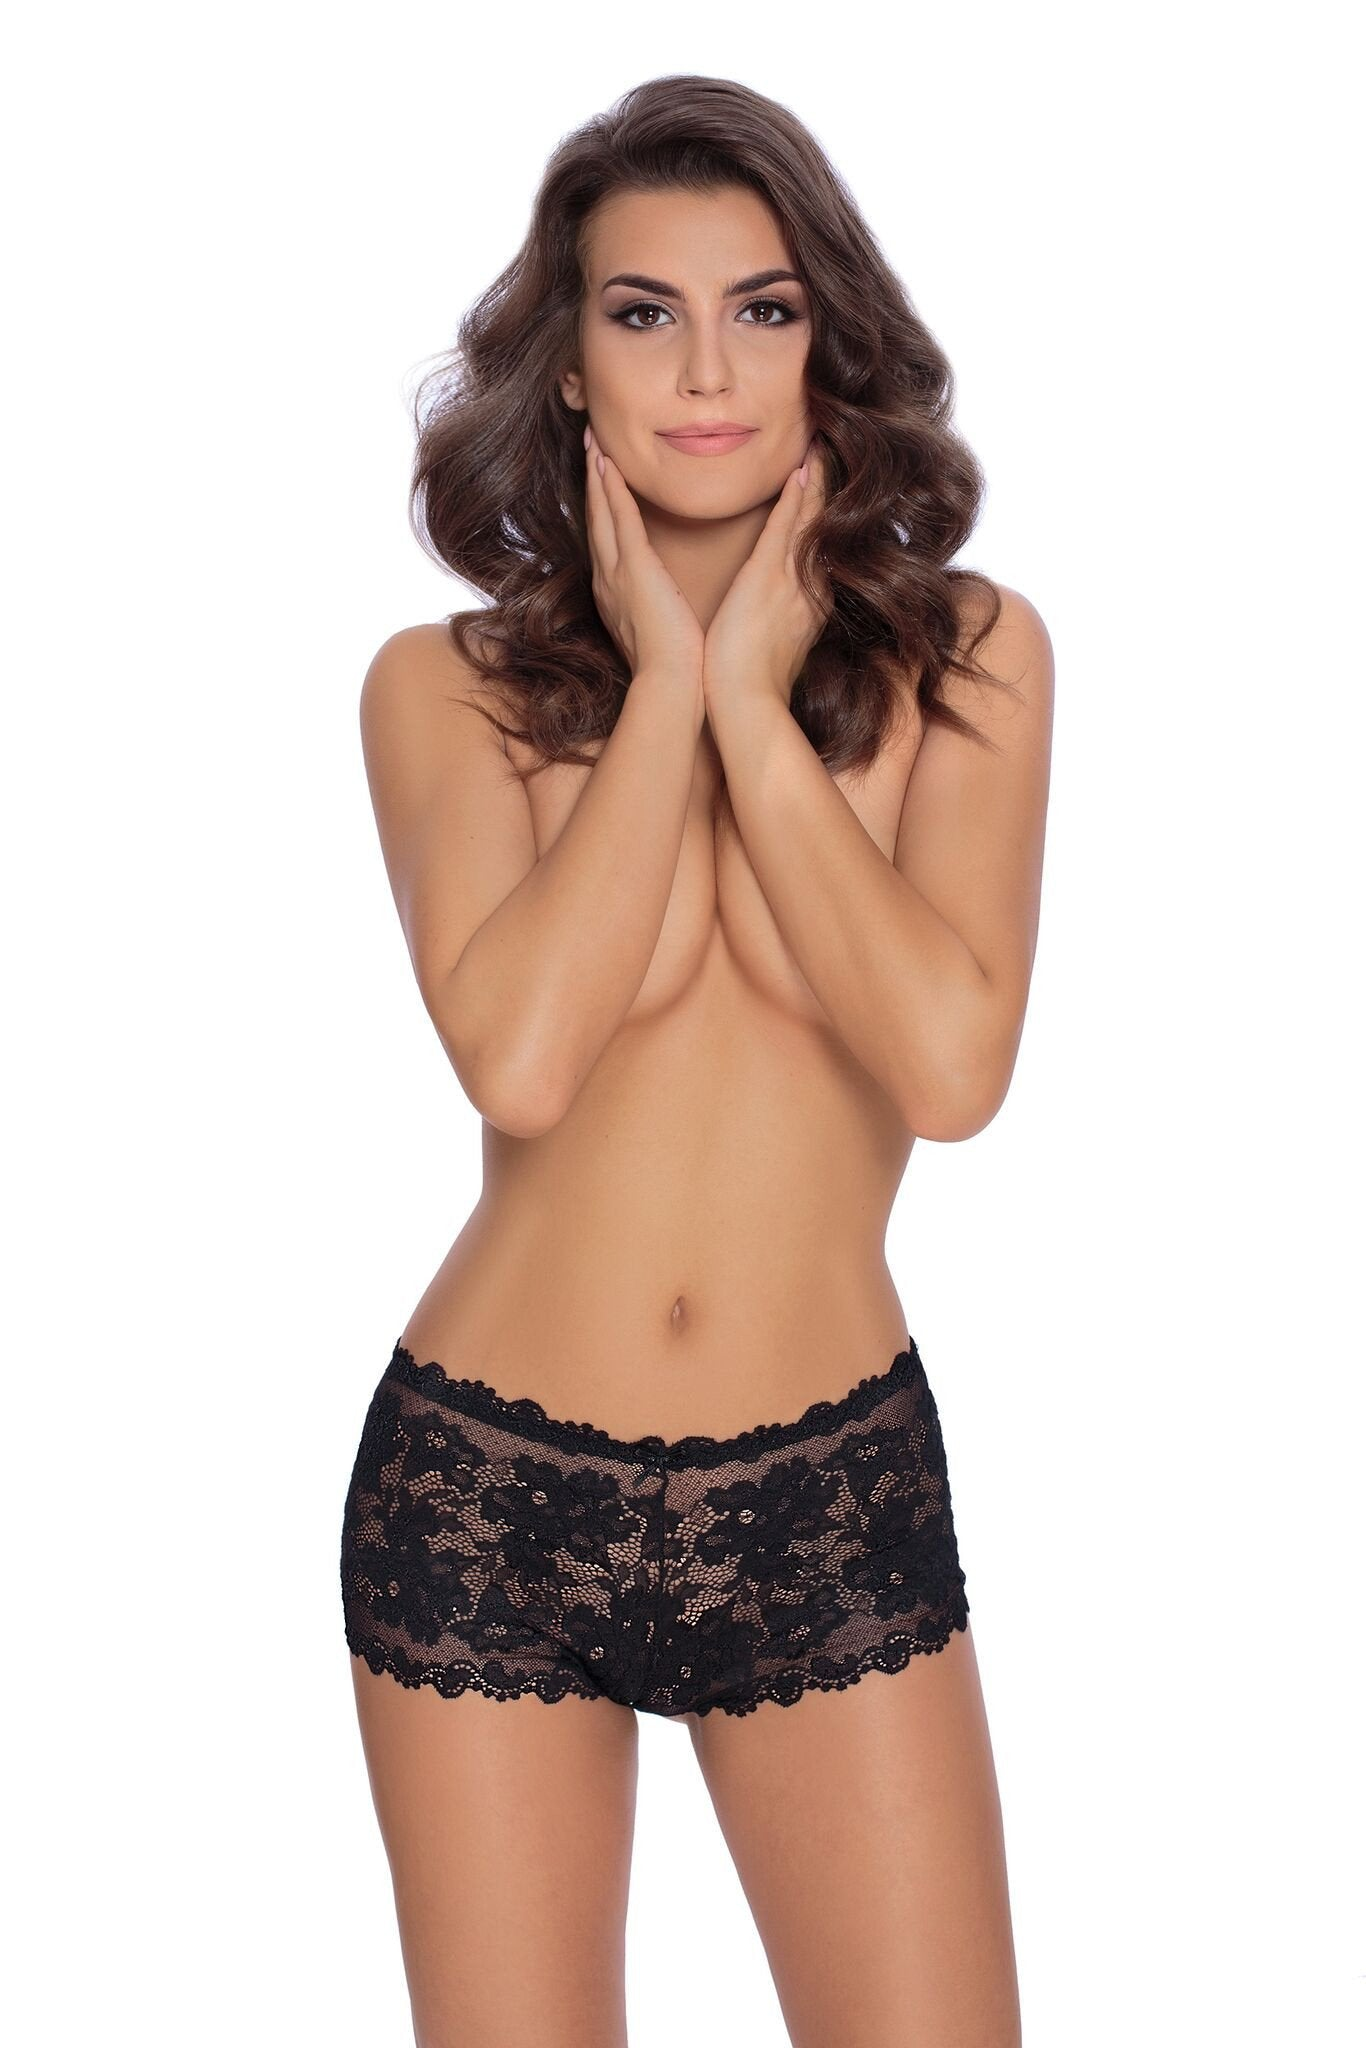 Roza Olympia Mini Short (Black) - Mini Shorts - Roza - Charm and Lace Boutique